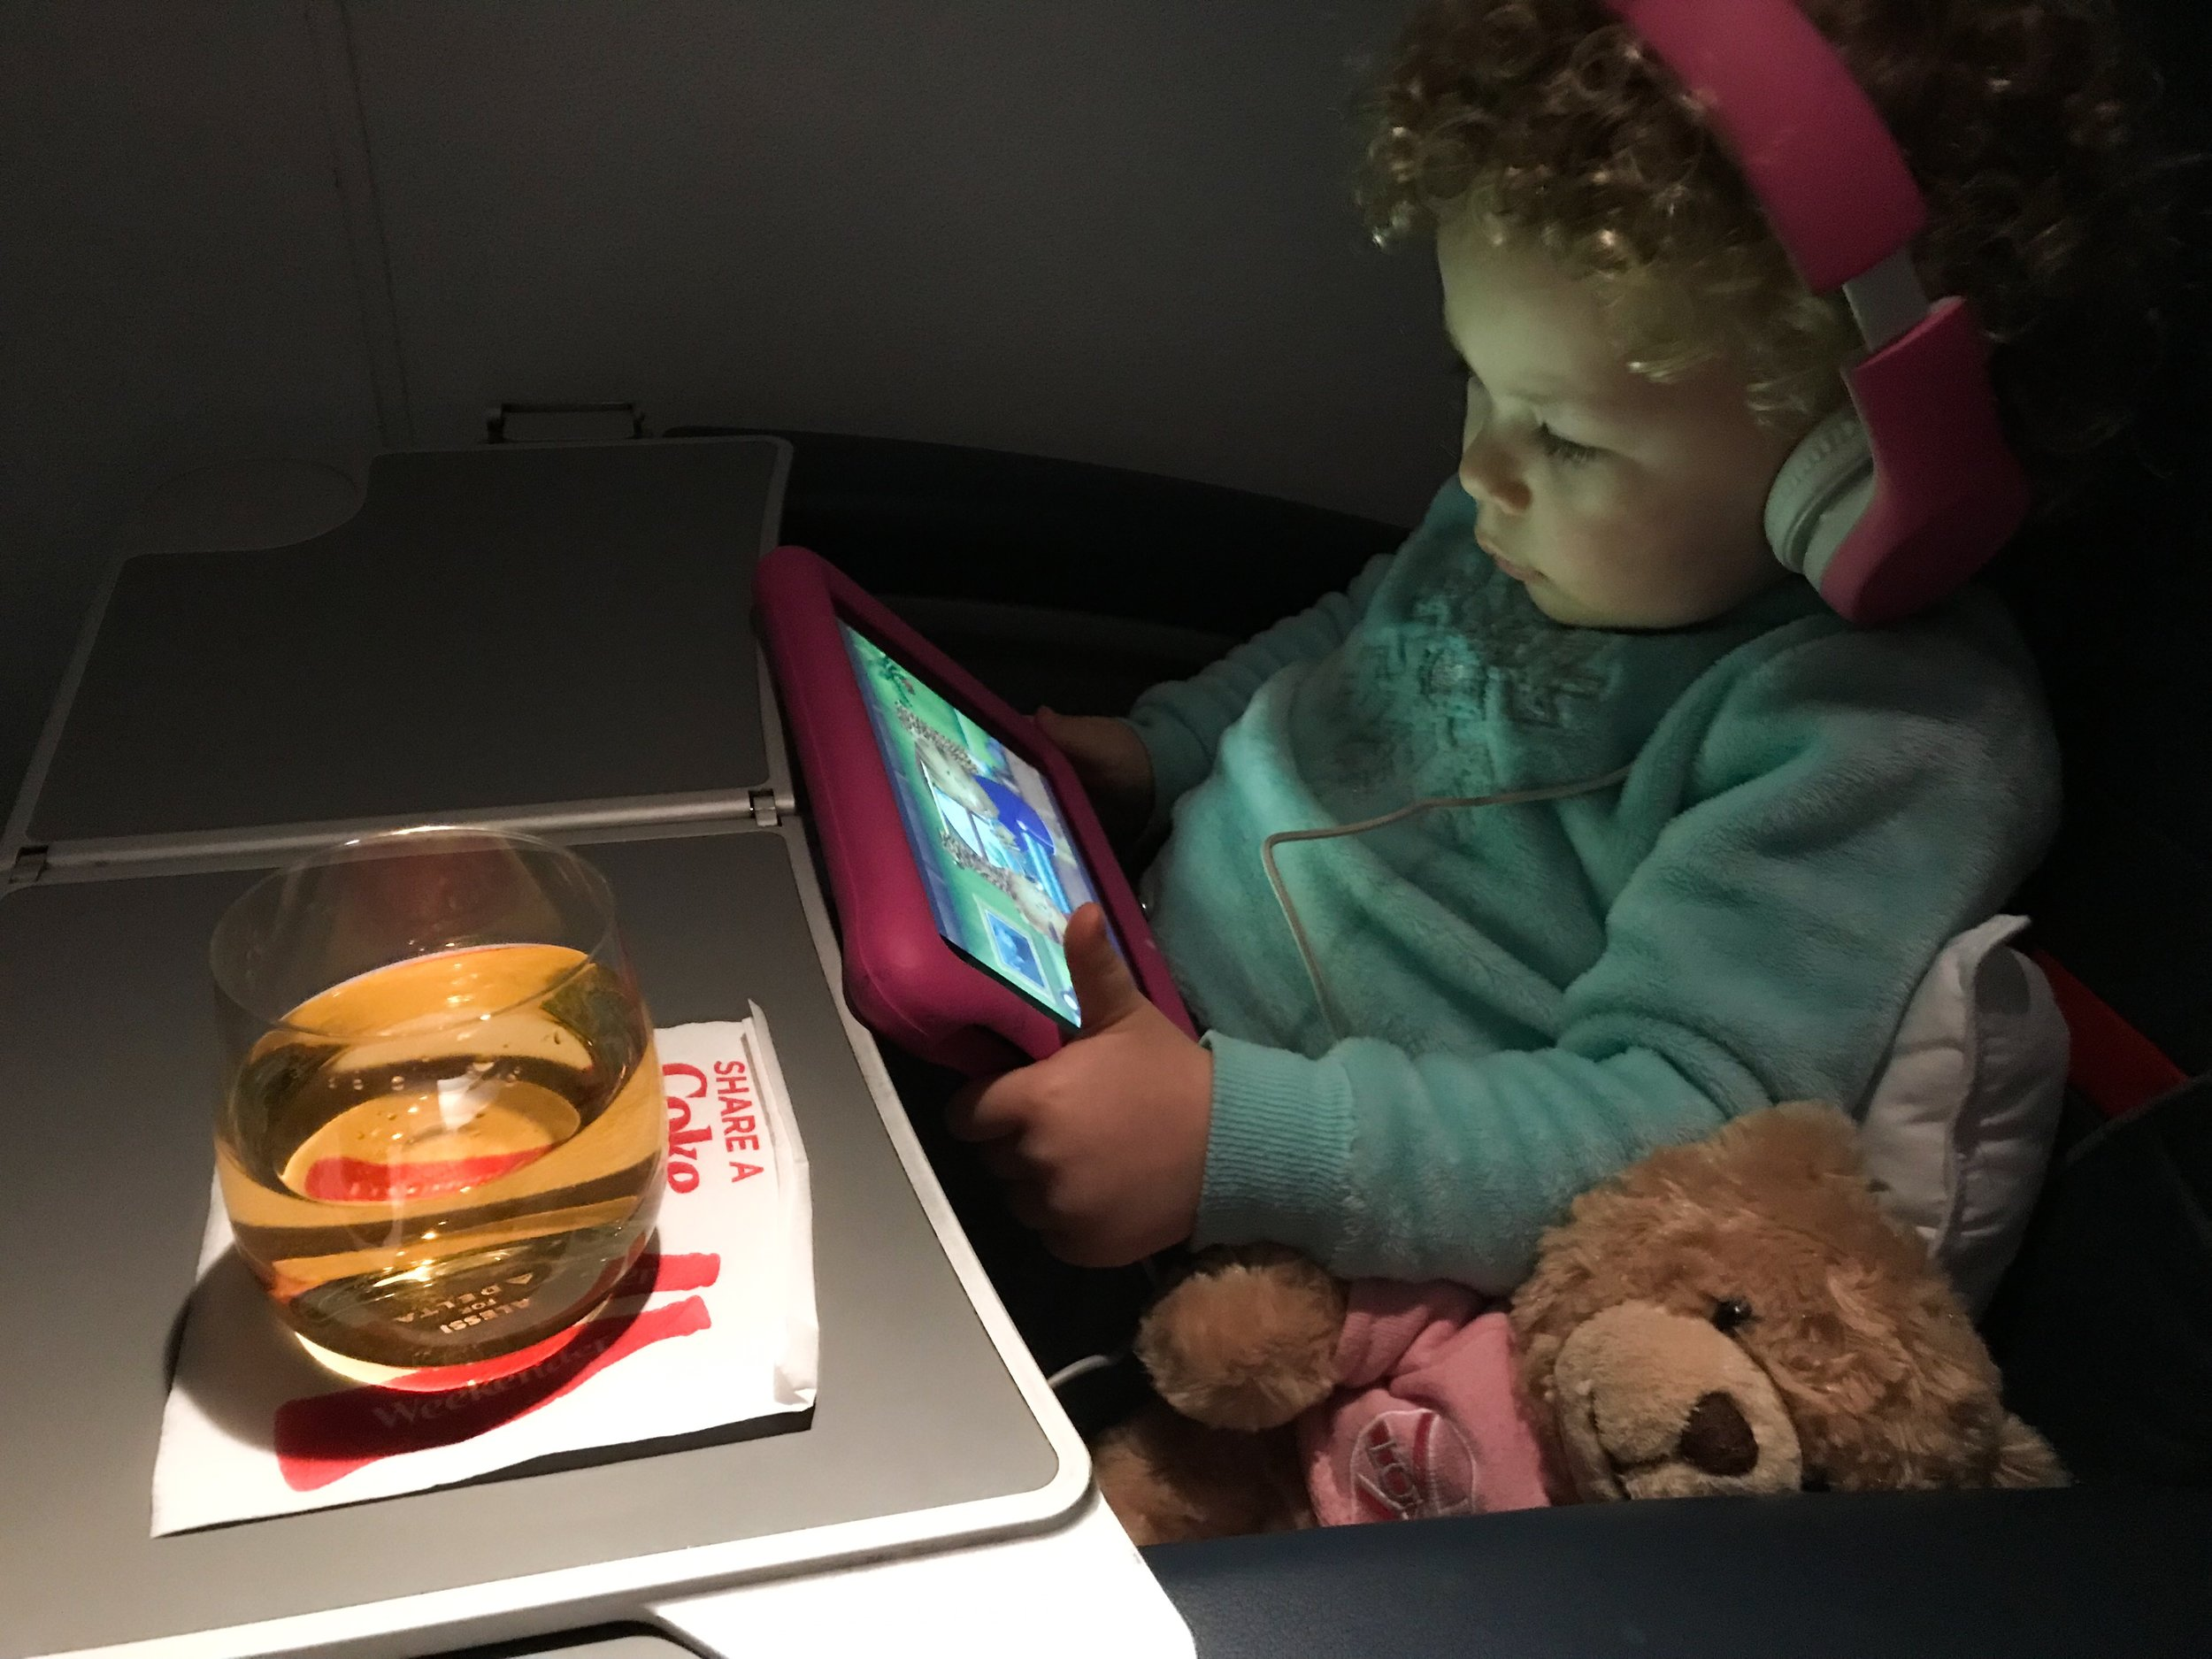 The ERJ-175 doesn't have IFE screens, but you can stream complimentary content directly to your personal devices.